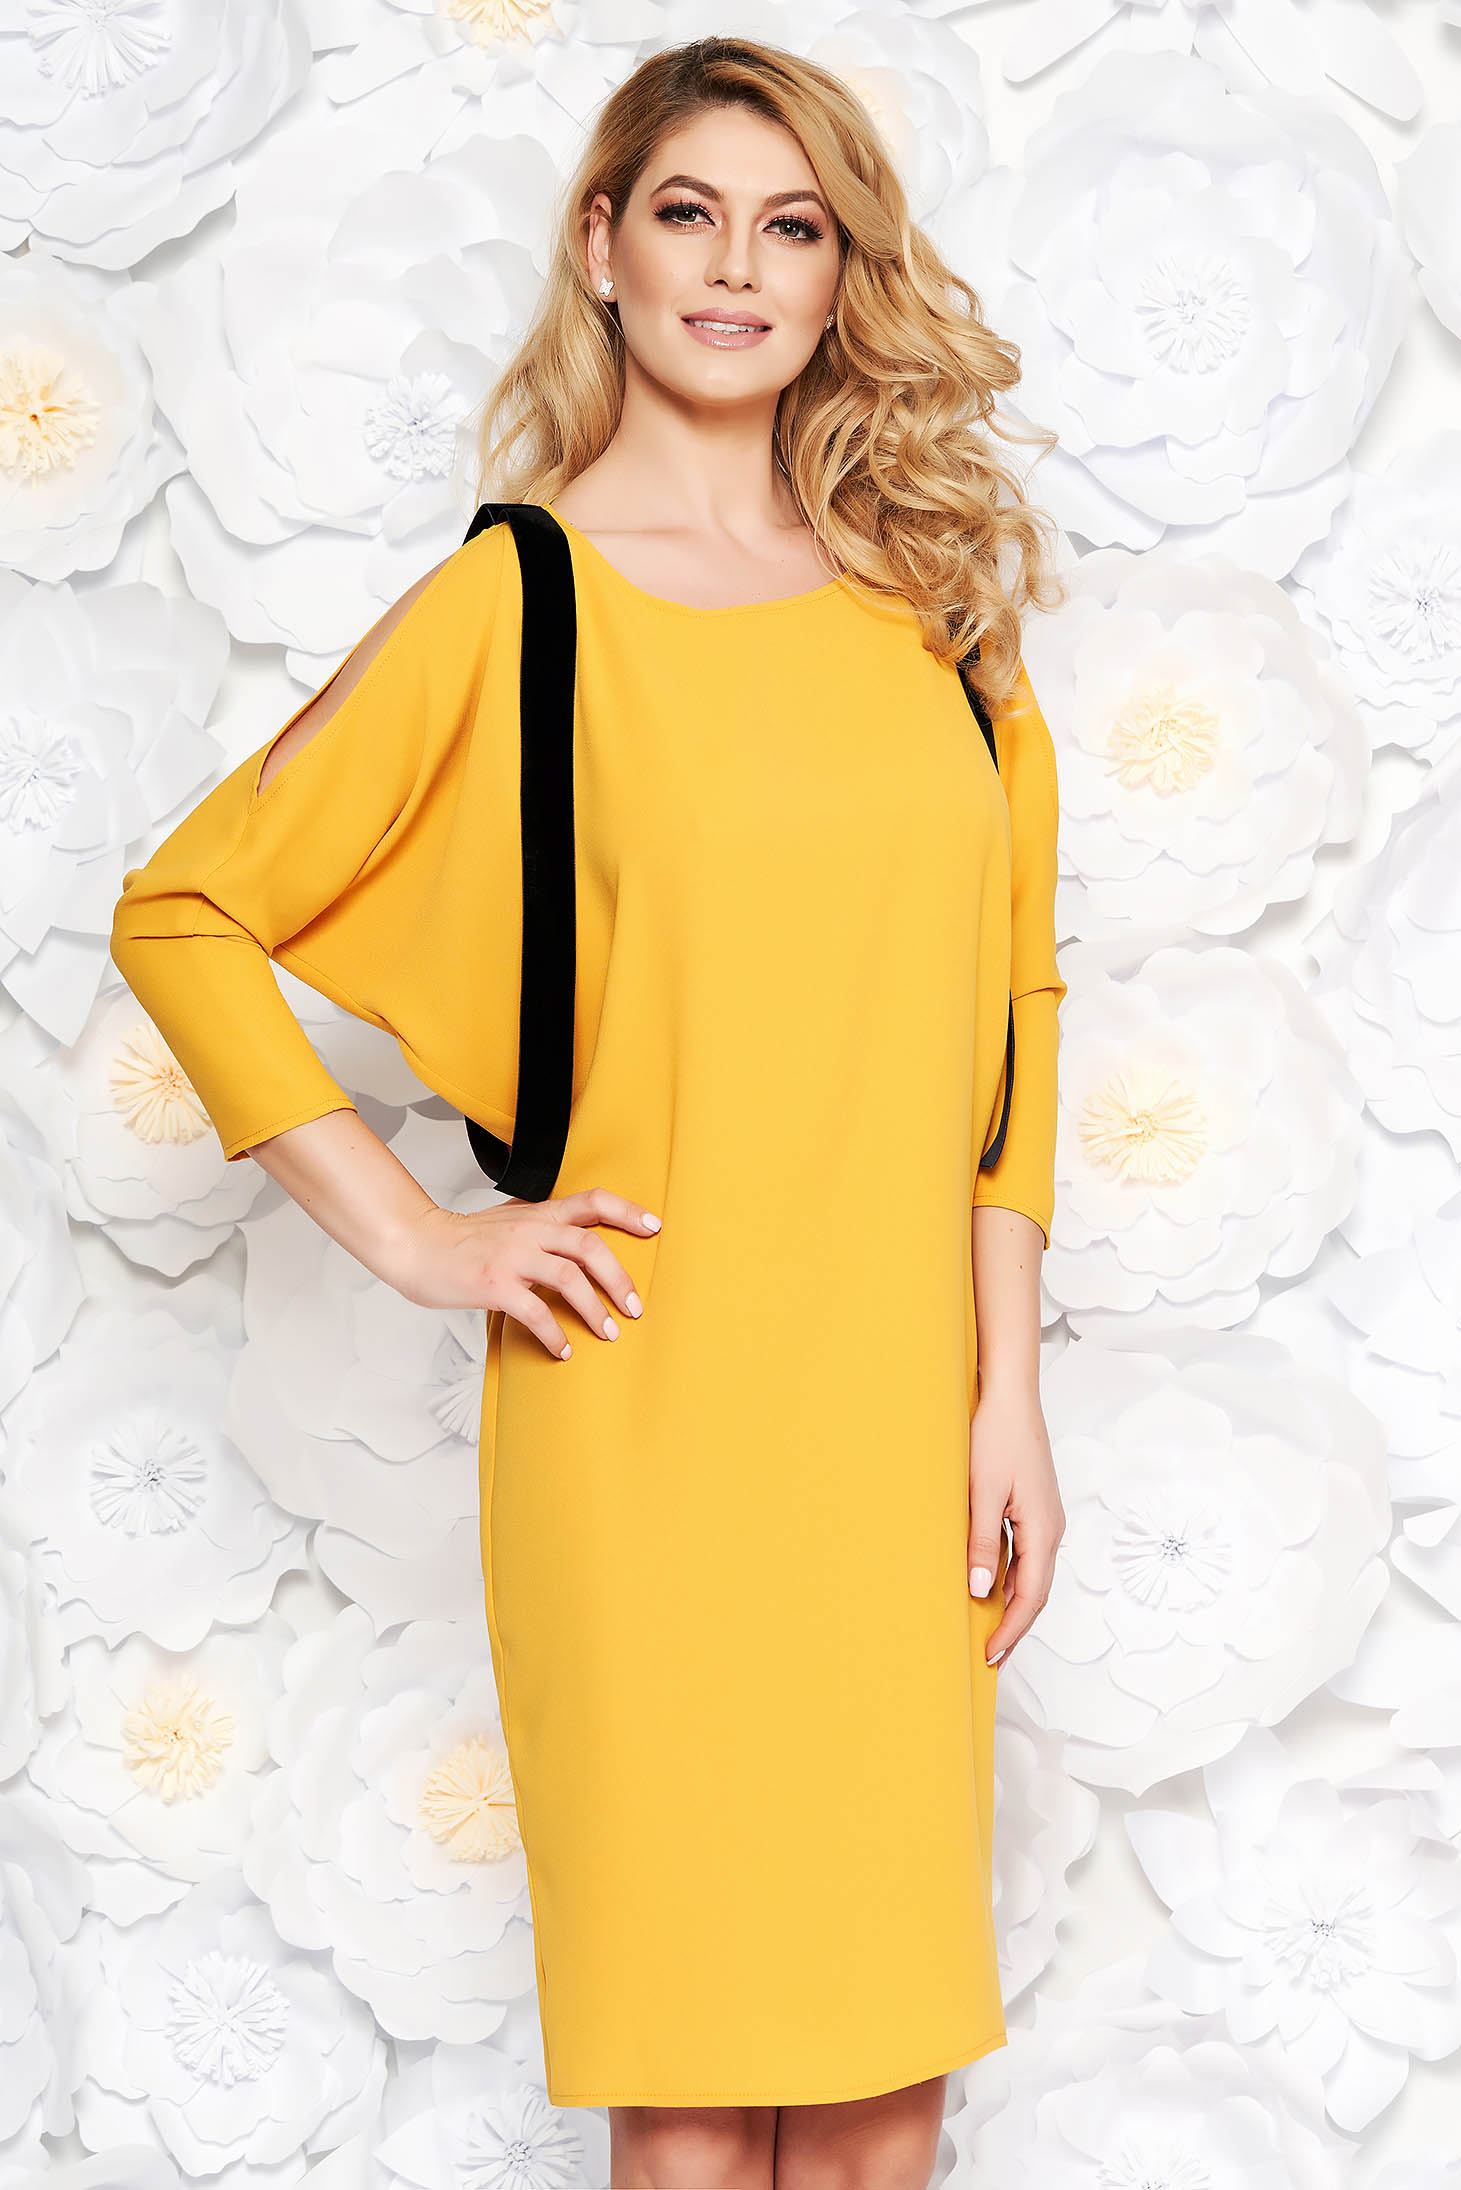 Mustard elegant flared dress thin fabric both shoulders cut out